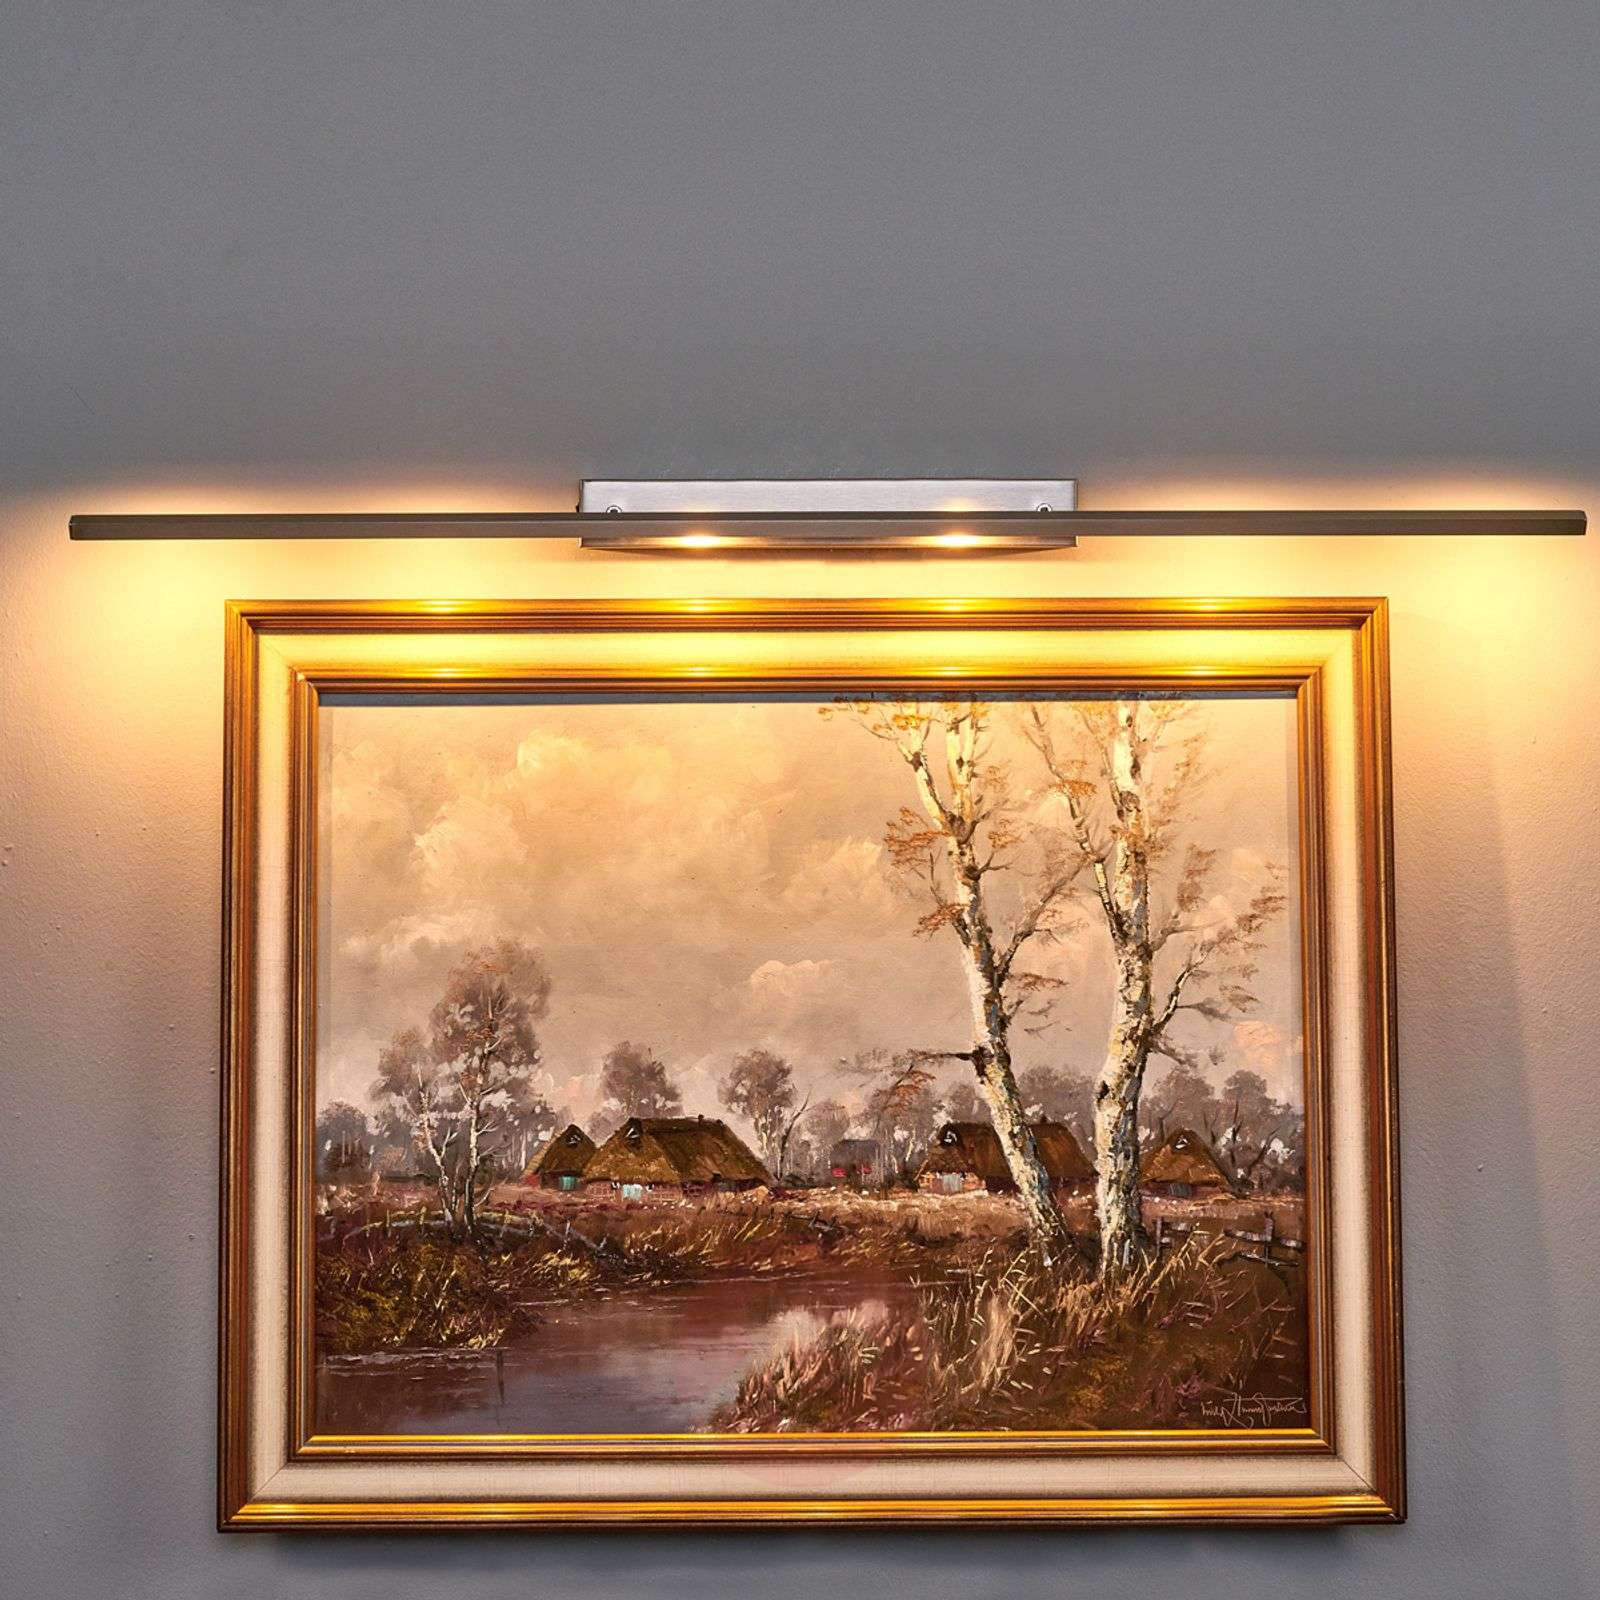 Elegant LED picture lamp Tolu made in Germany-6722267-01